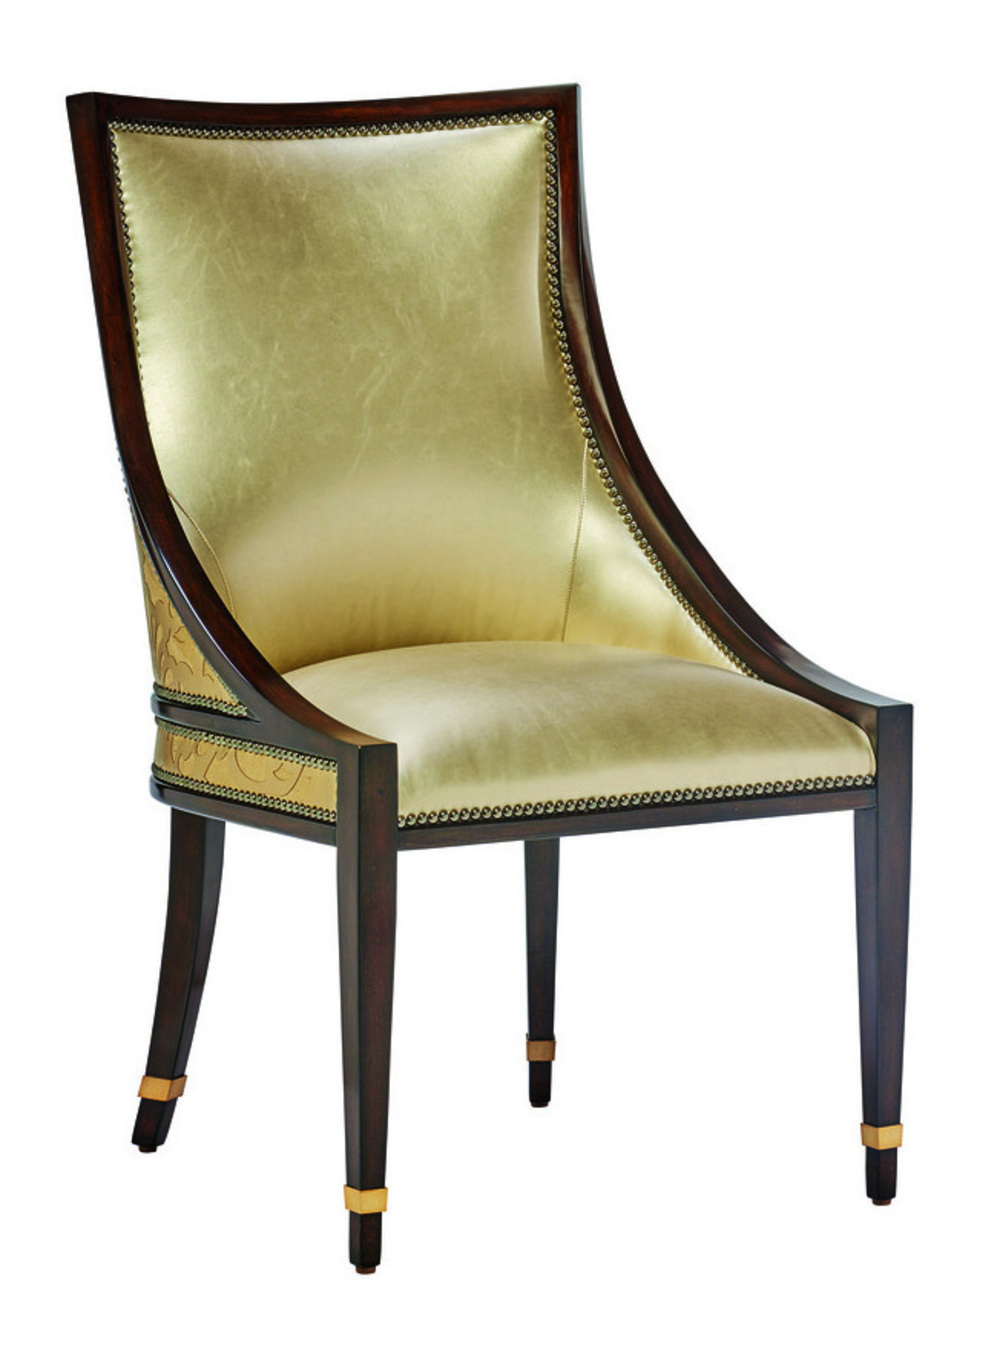 MARGE CARSON, INC. - Lake Shore Drive Side Chair